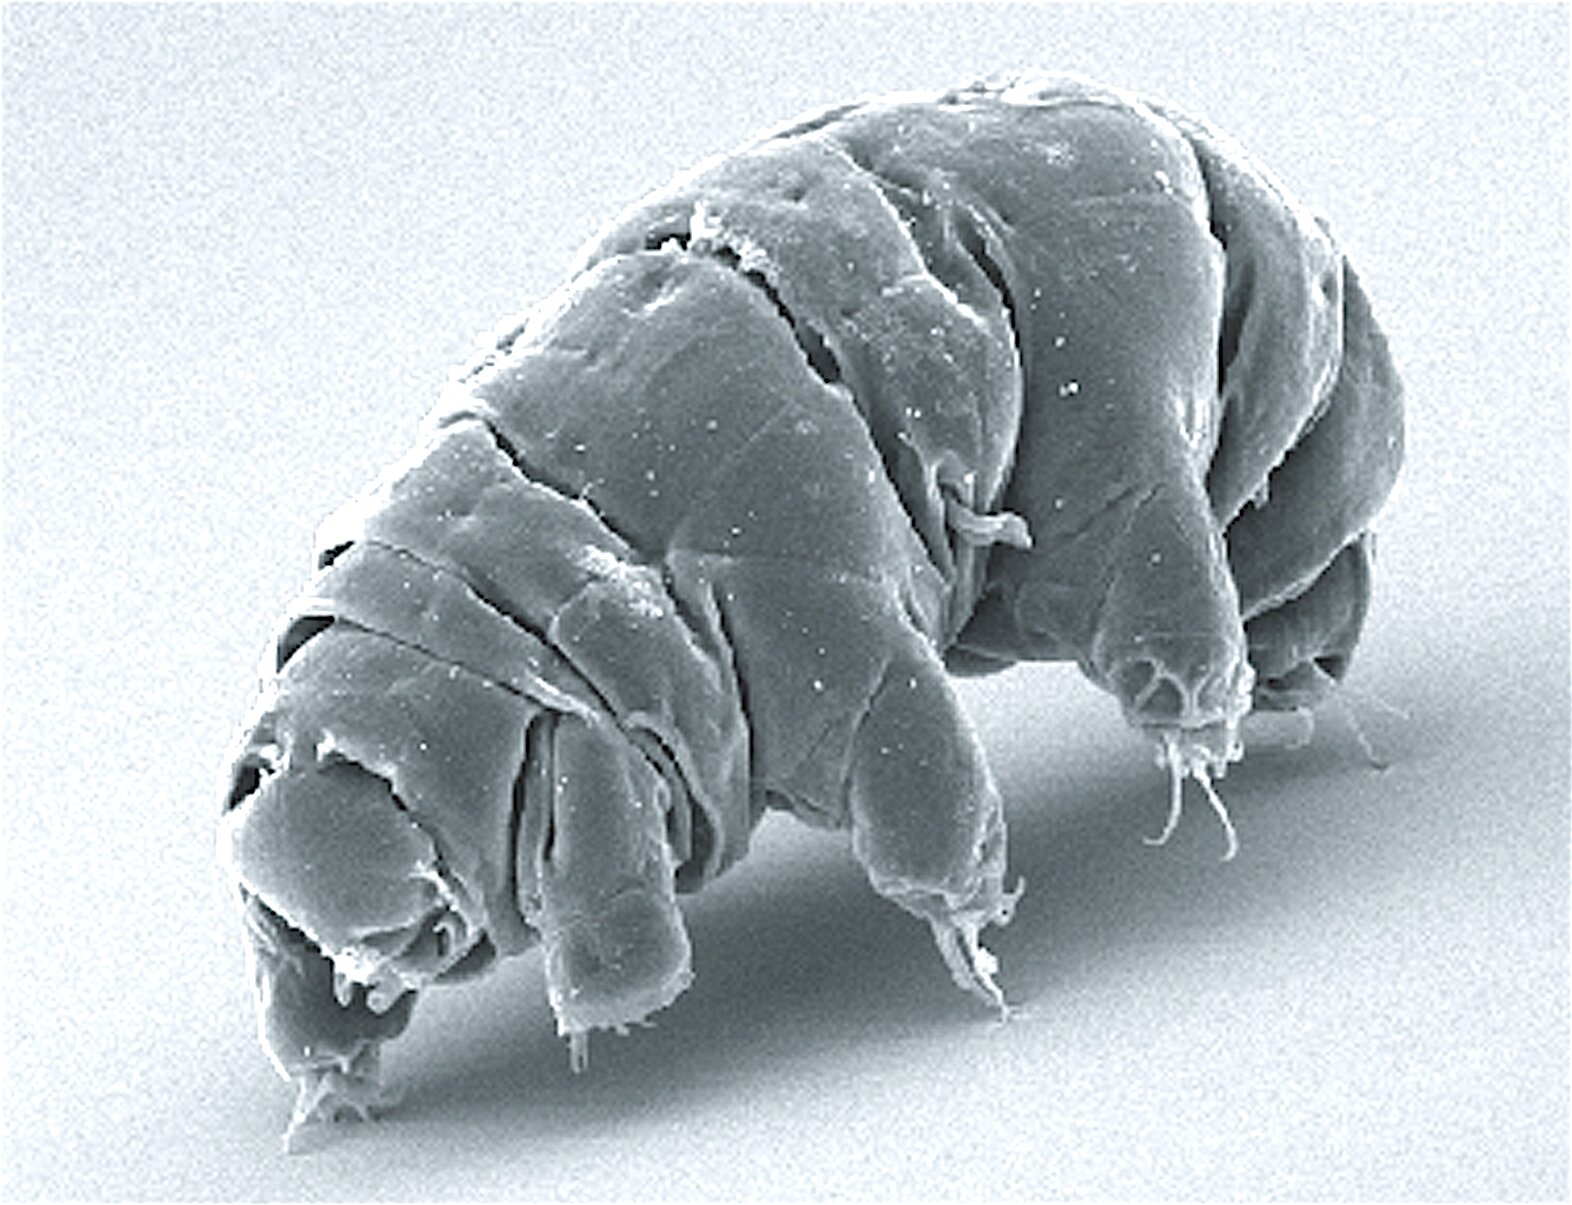 The physics behind a water bear's lumbering gait